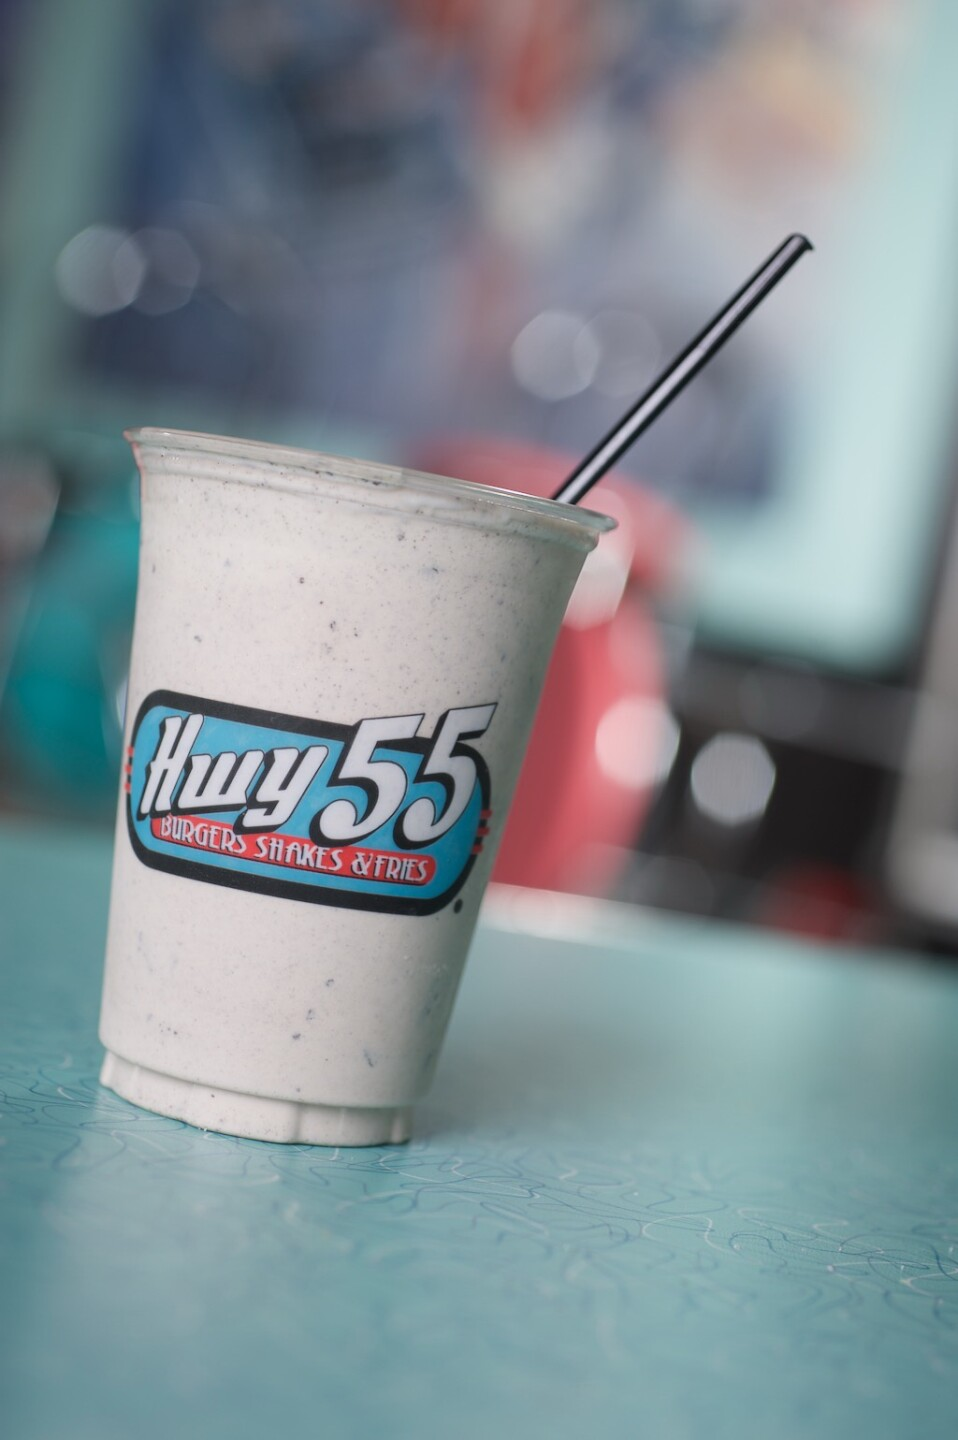 Photos: Hwy 55 Burger, Shakes & Fries to open Chesapeakelocation